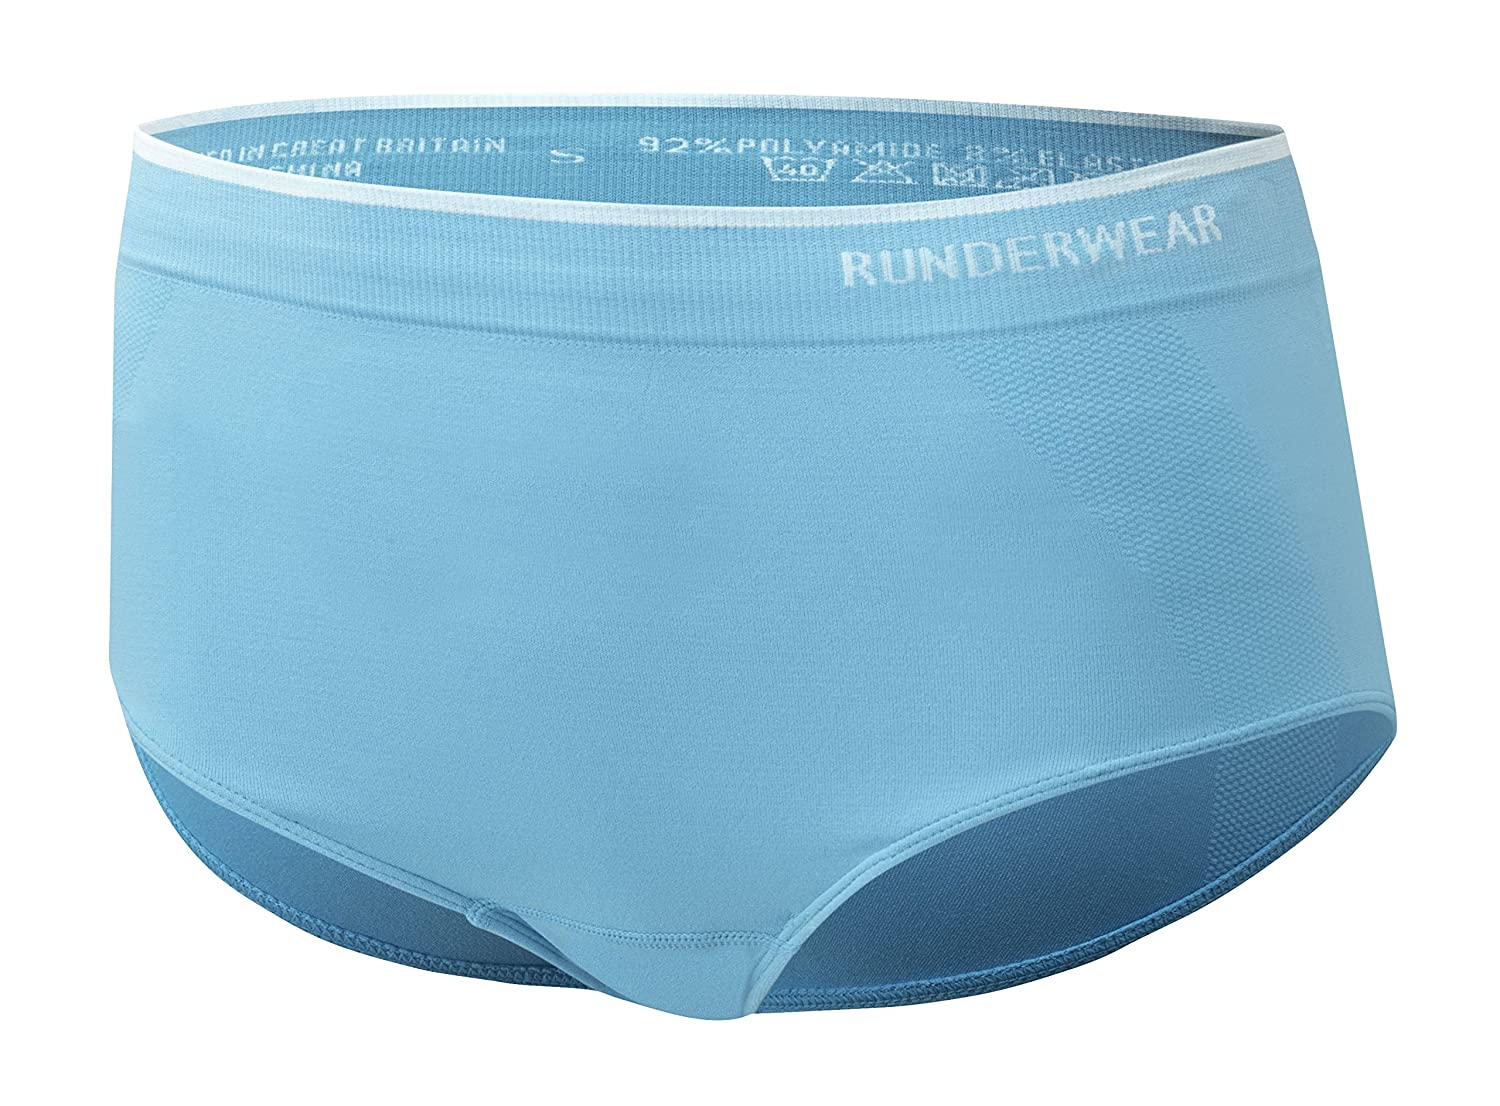 Runderwear Women's Briefs | Seamless, Chafe-Free Performance Running Underwear wmensrunbrf_blk